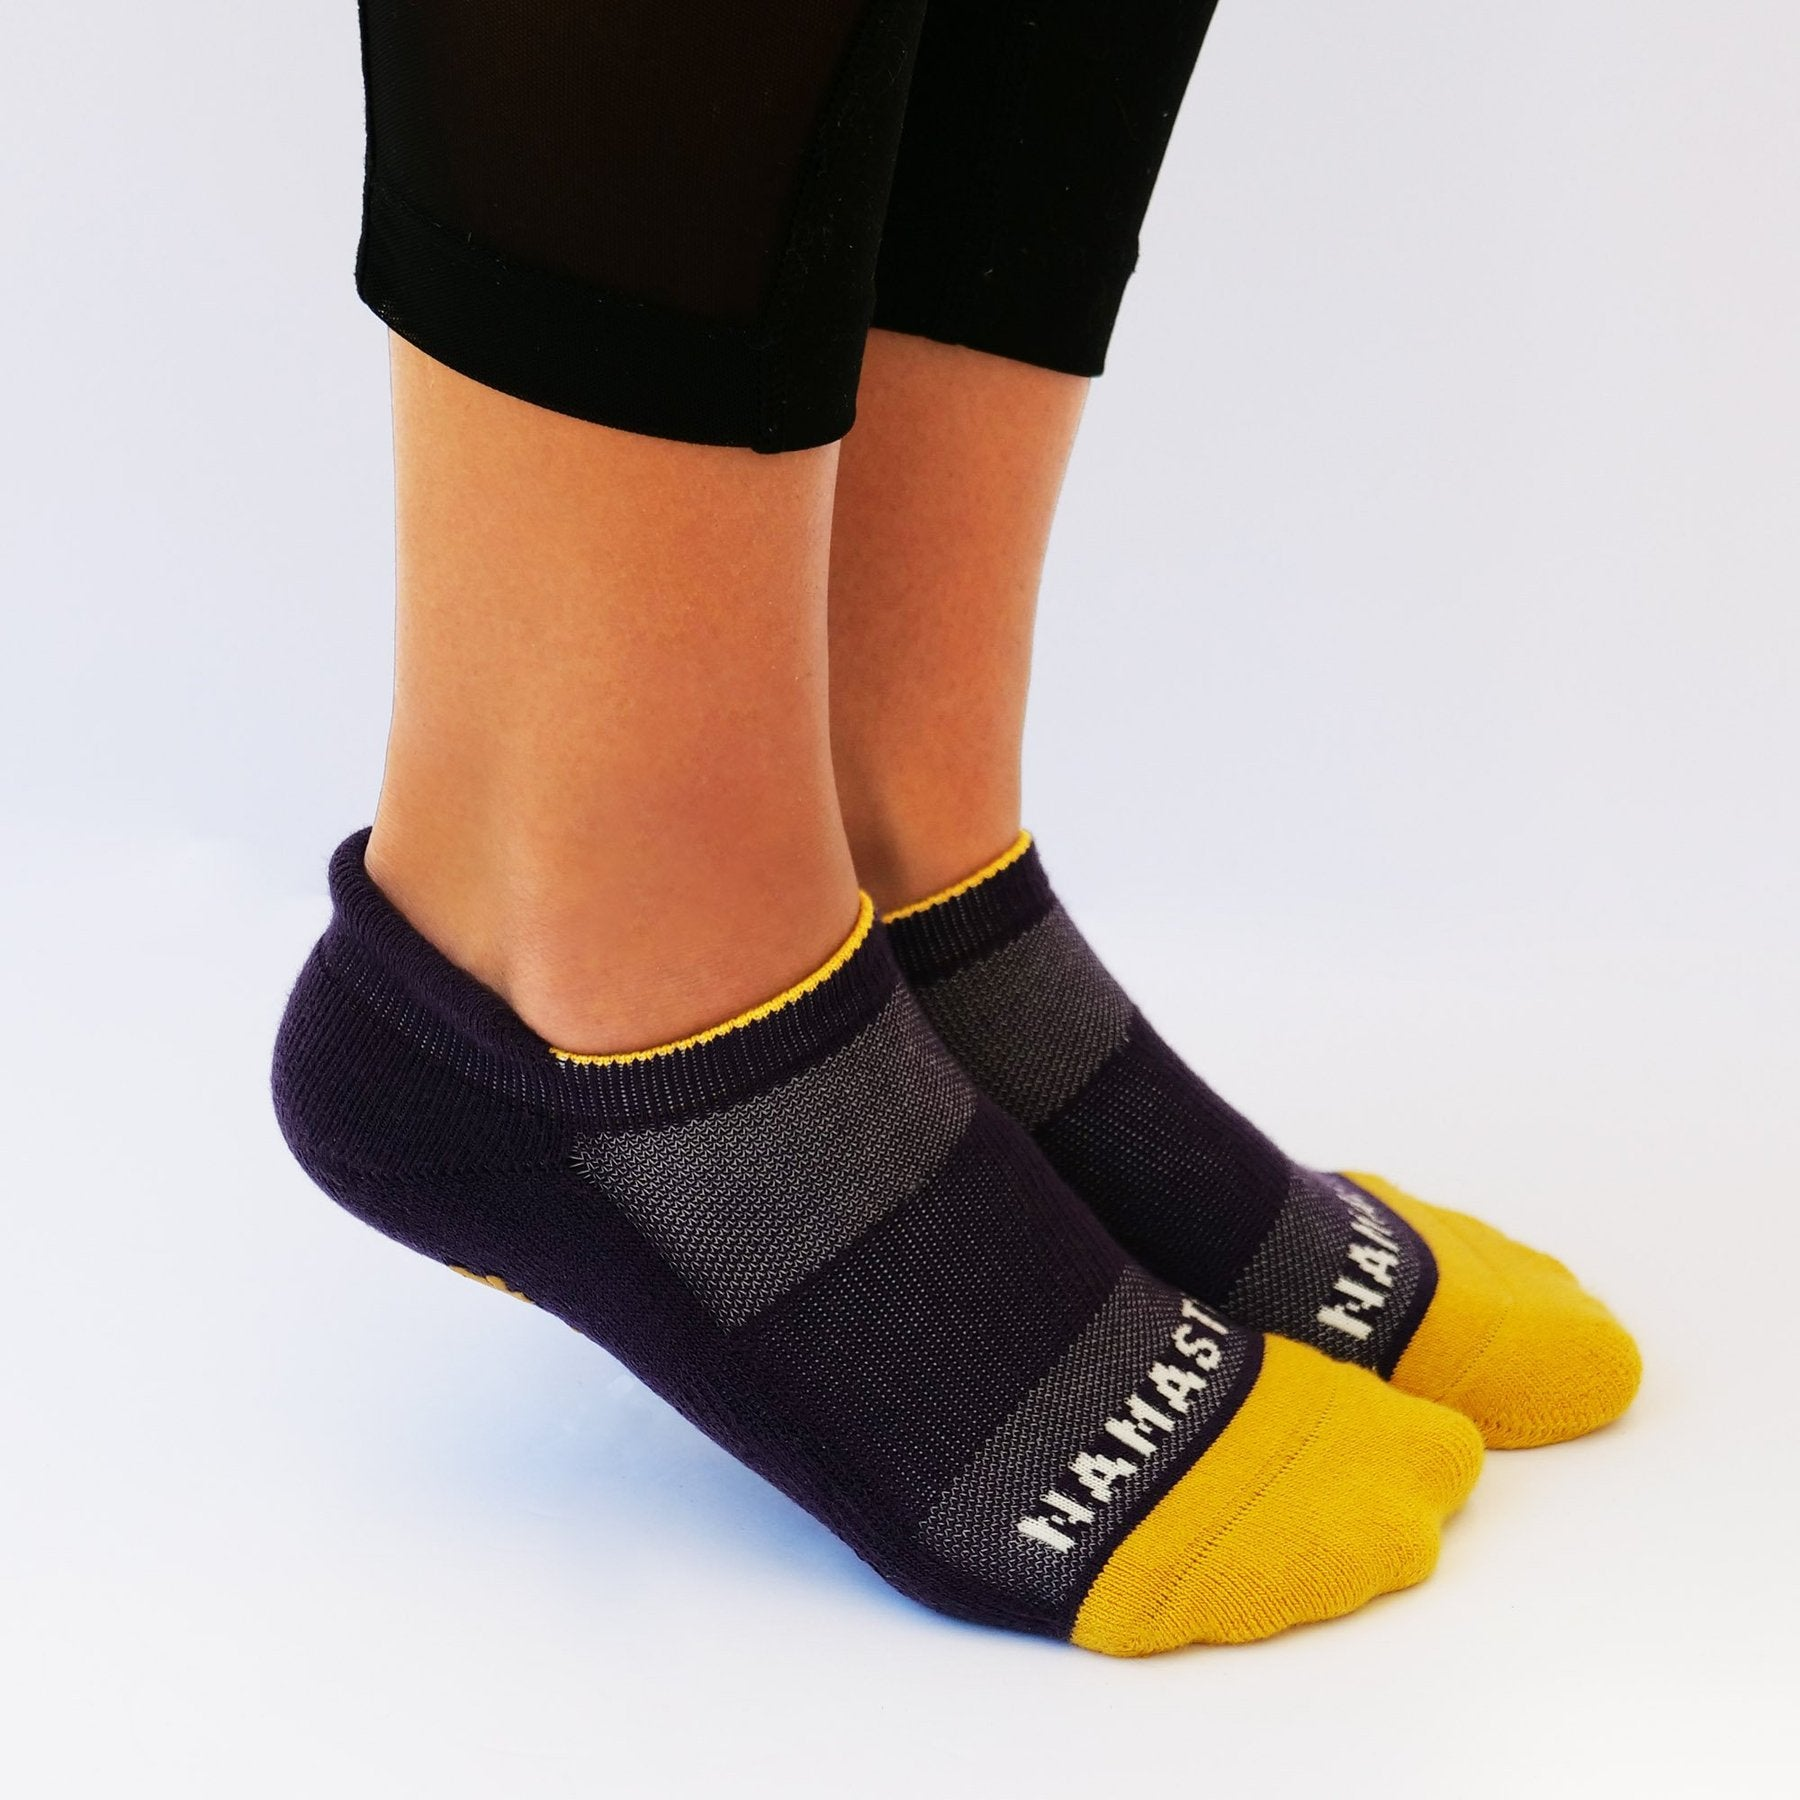 Hugs Brand - Namaste Stretch Grip Socks